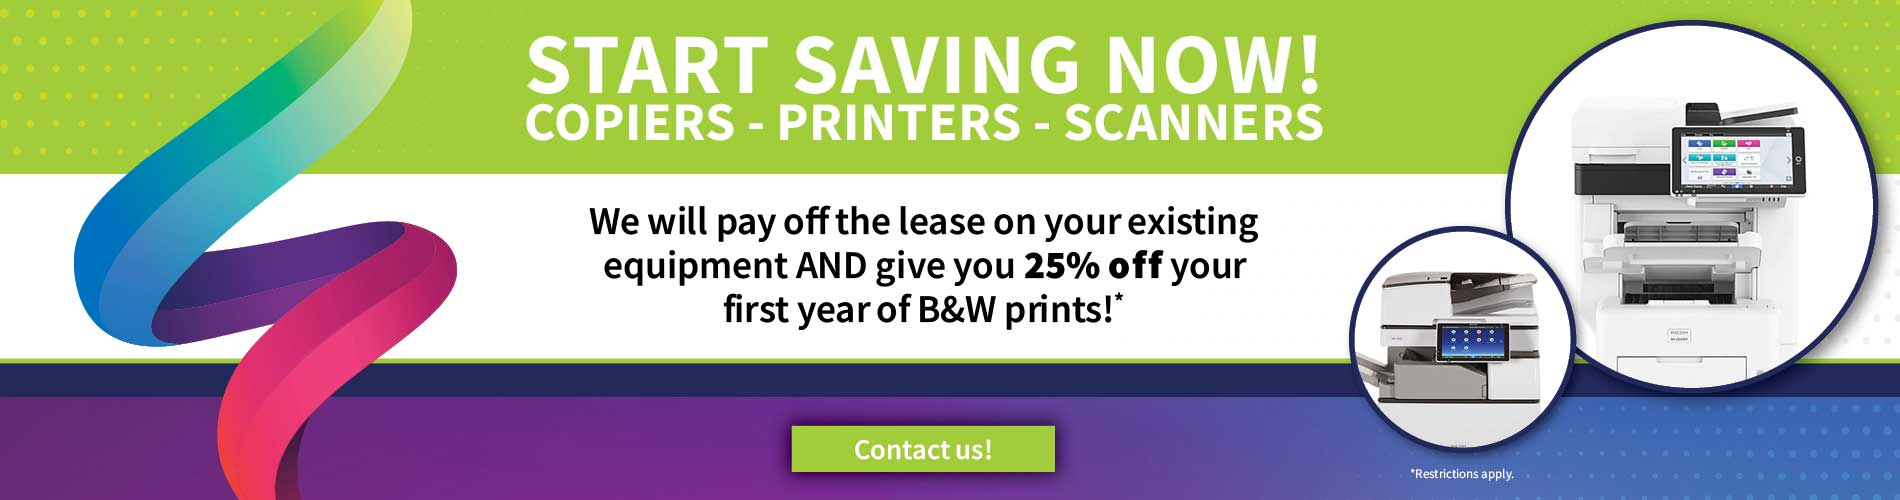 Start Saving Now on copiers, printers and scanners. We will pay off the leas on your existing equipment and give you 25% off your first year of B&W prints. Restrictions Apply. Contact Us.